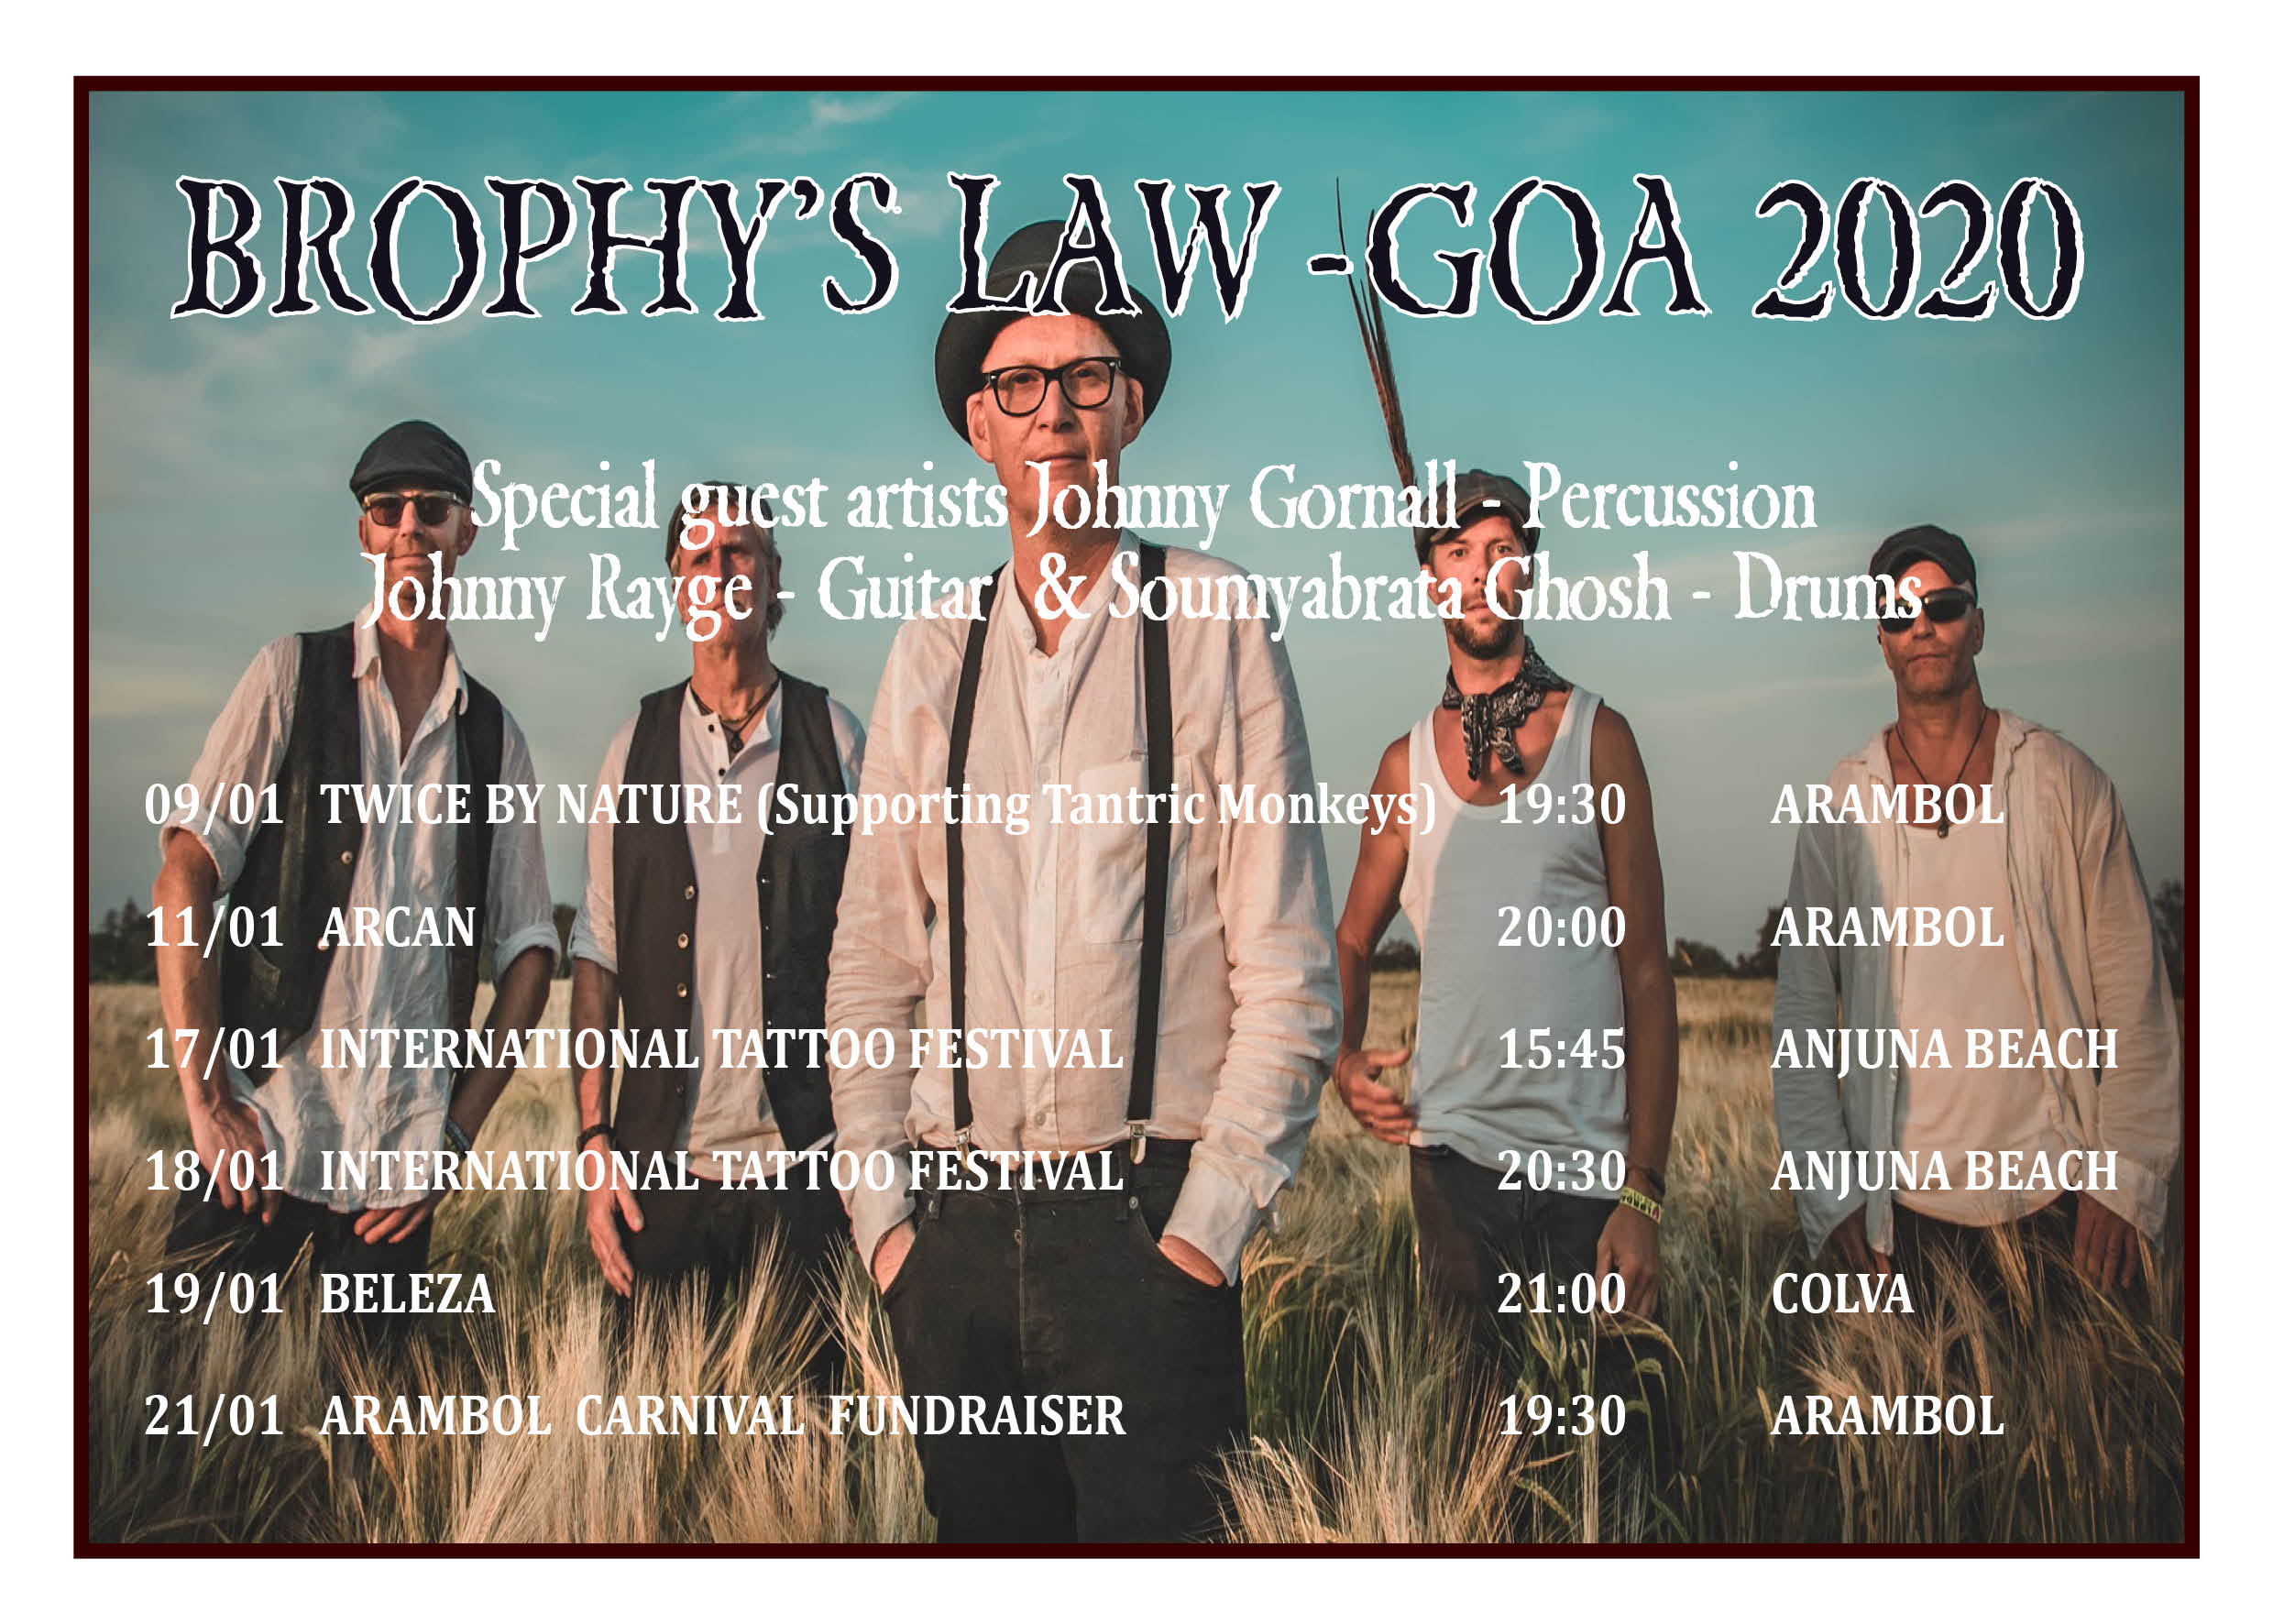 Brophy's Law Goa Tour